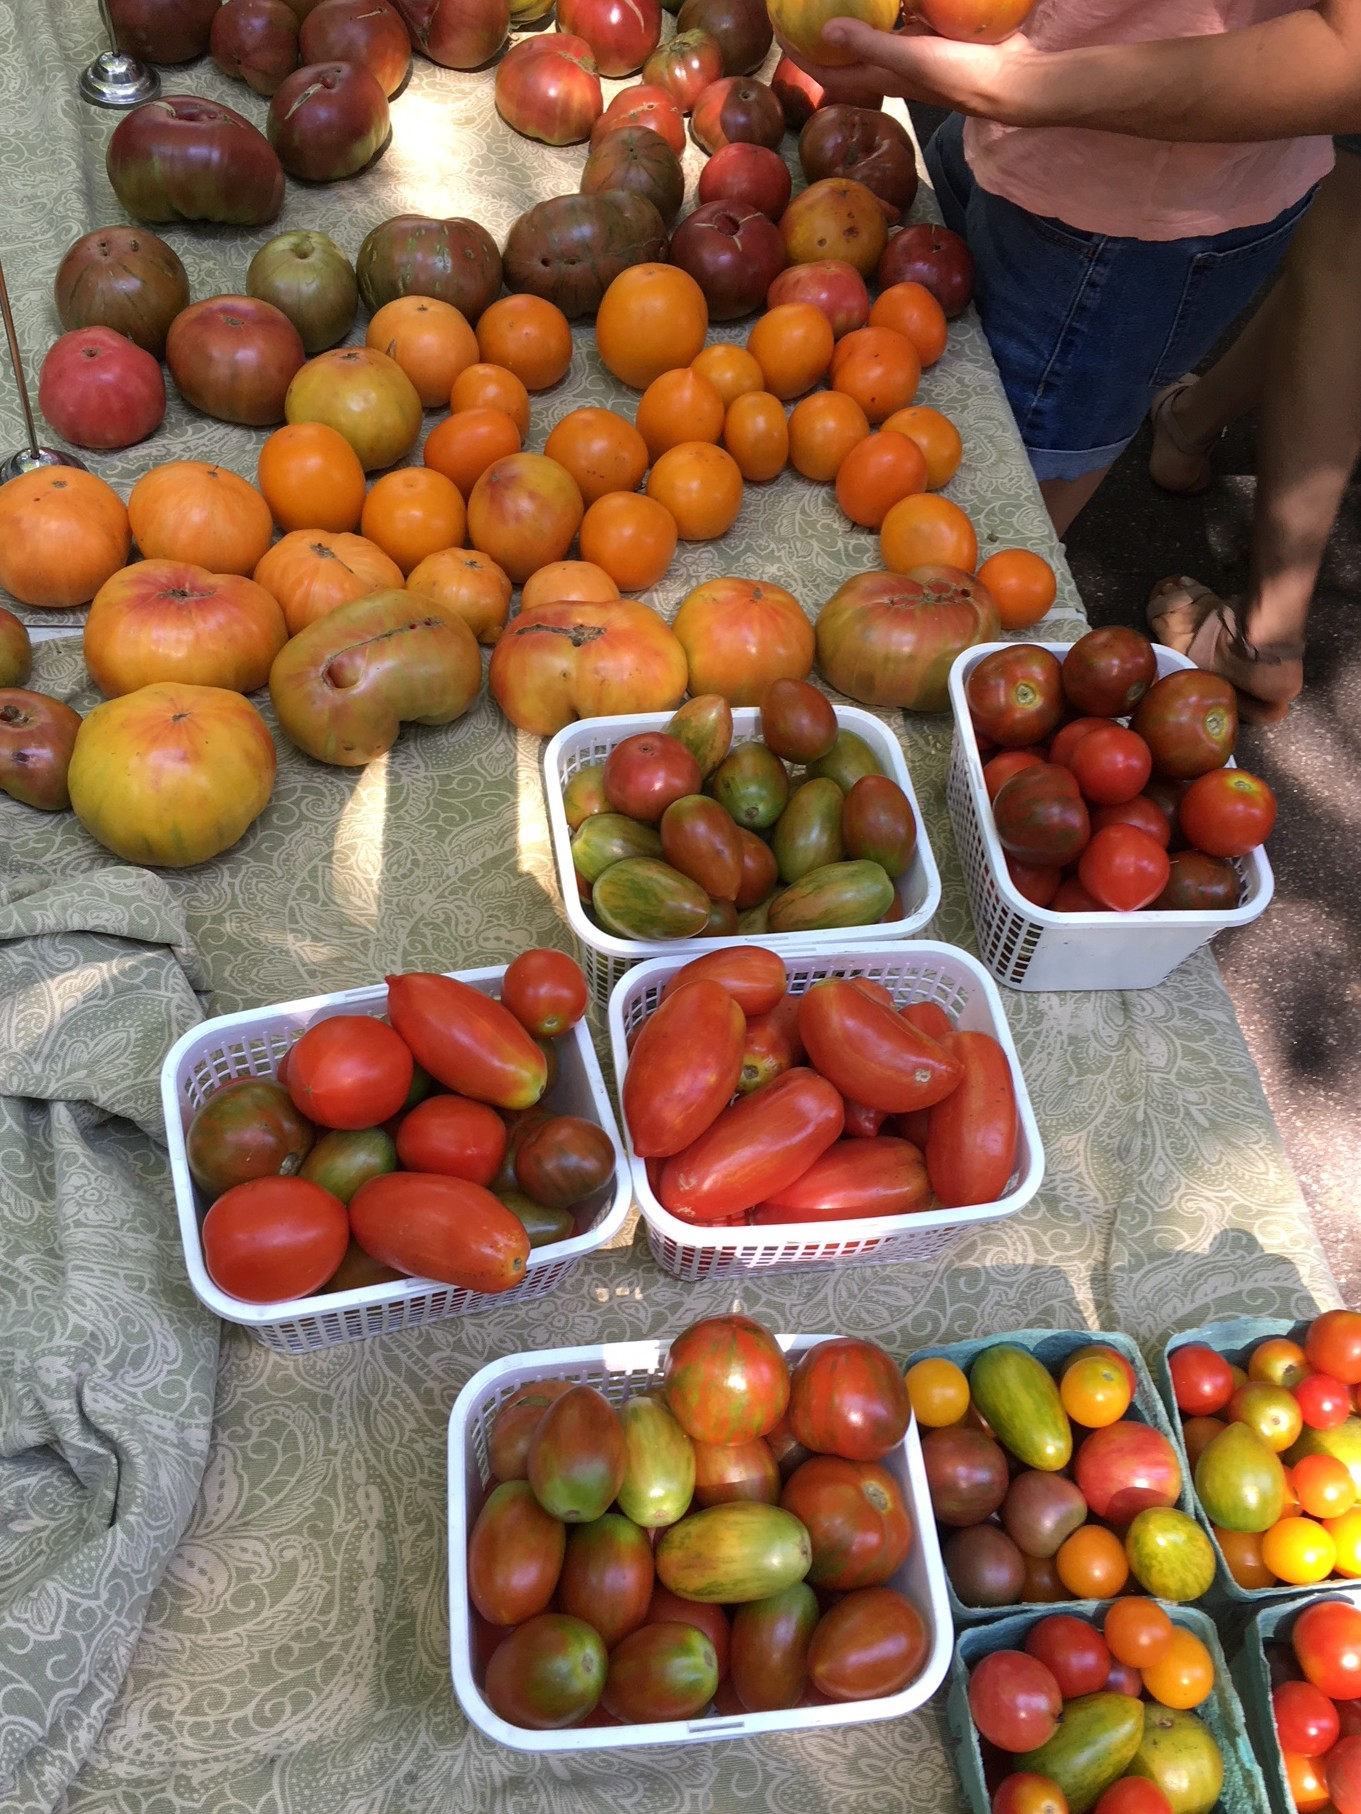 table full of tomatoes at farmers market